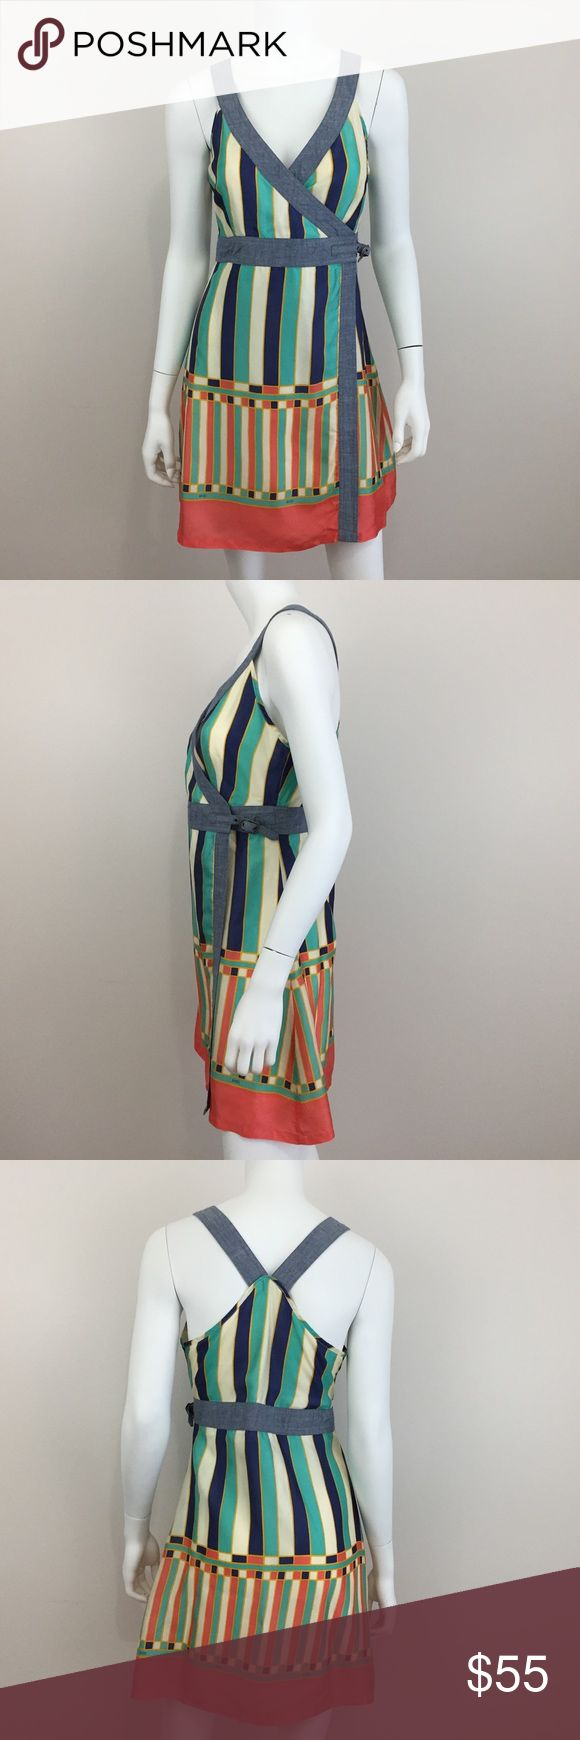 Diesel M Multi Color Stripe Geo Wrap Dress EUC Measurements according to brand: bust 34, waist 27, hips 37. #0007 Diesel Dresses